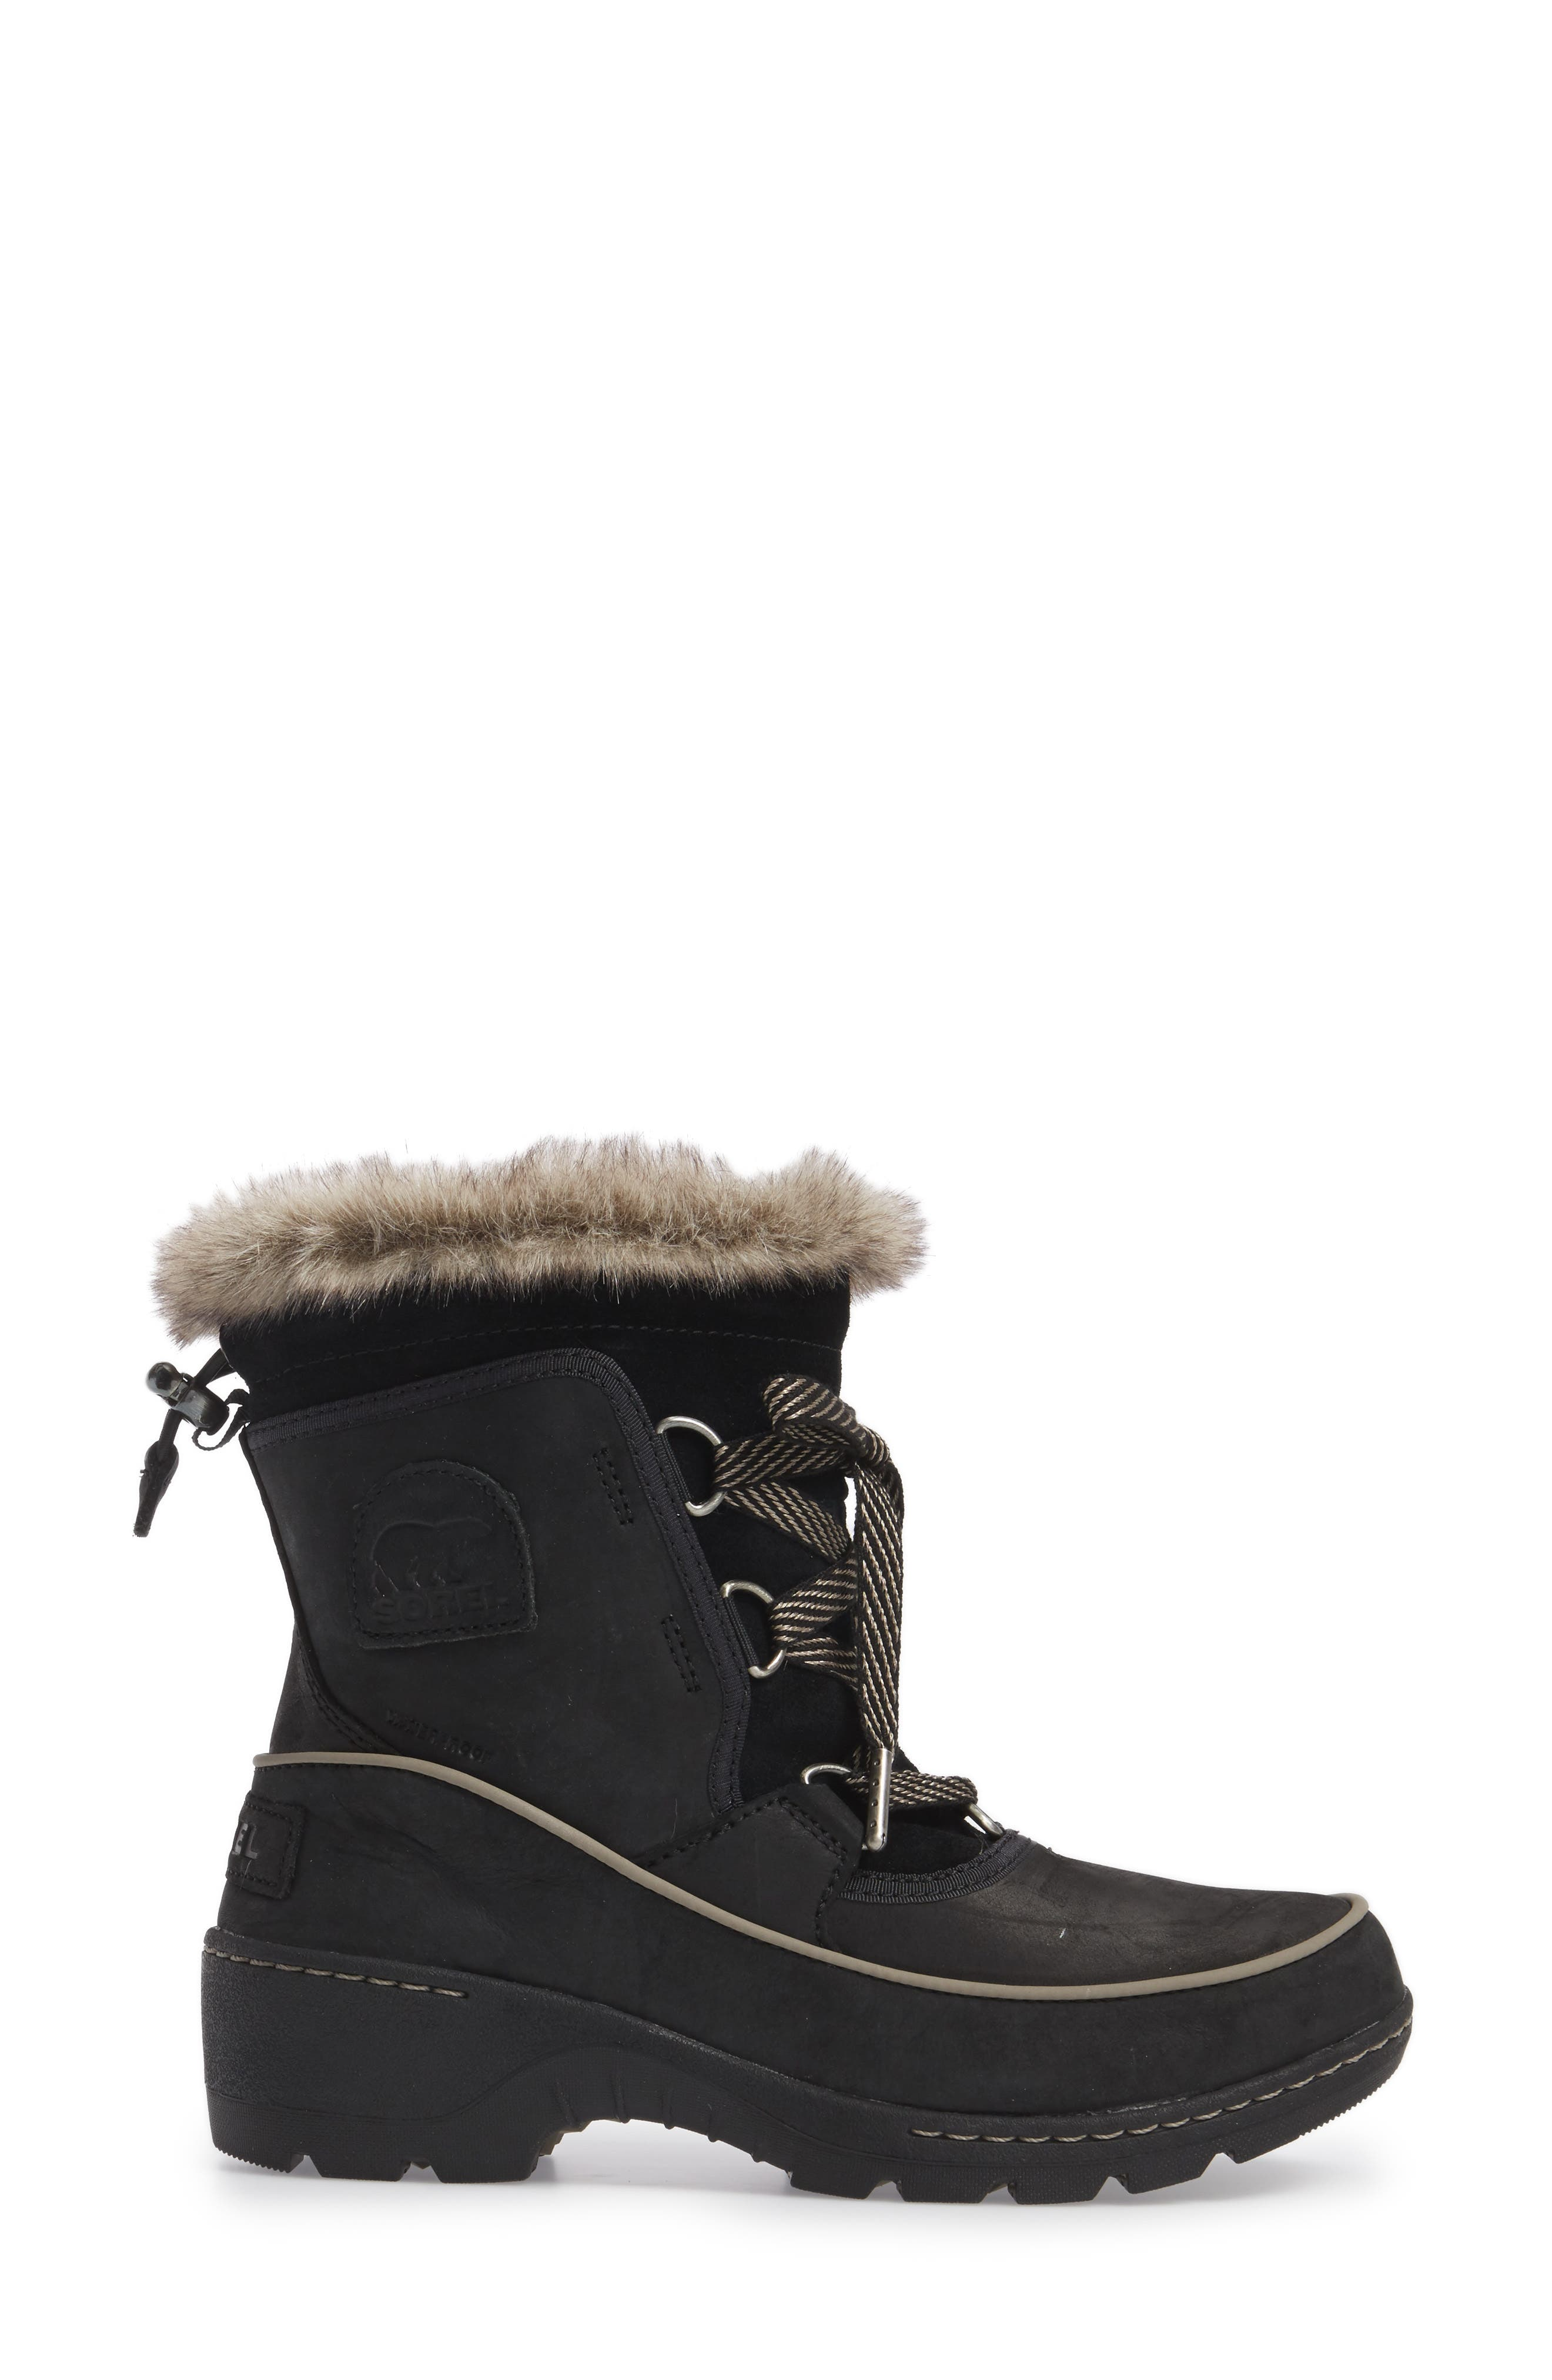 Tivoli II Insulated Winter Boot with Faux Fur Trim,                             Alternate thumbnail 3, color,                             Black/ Kettle